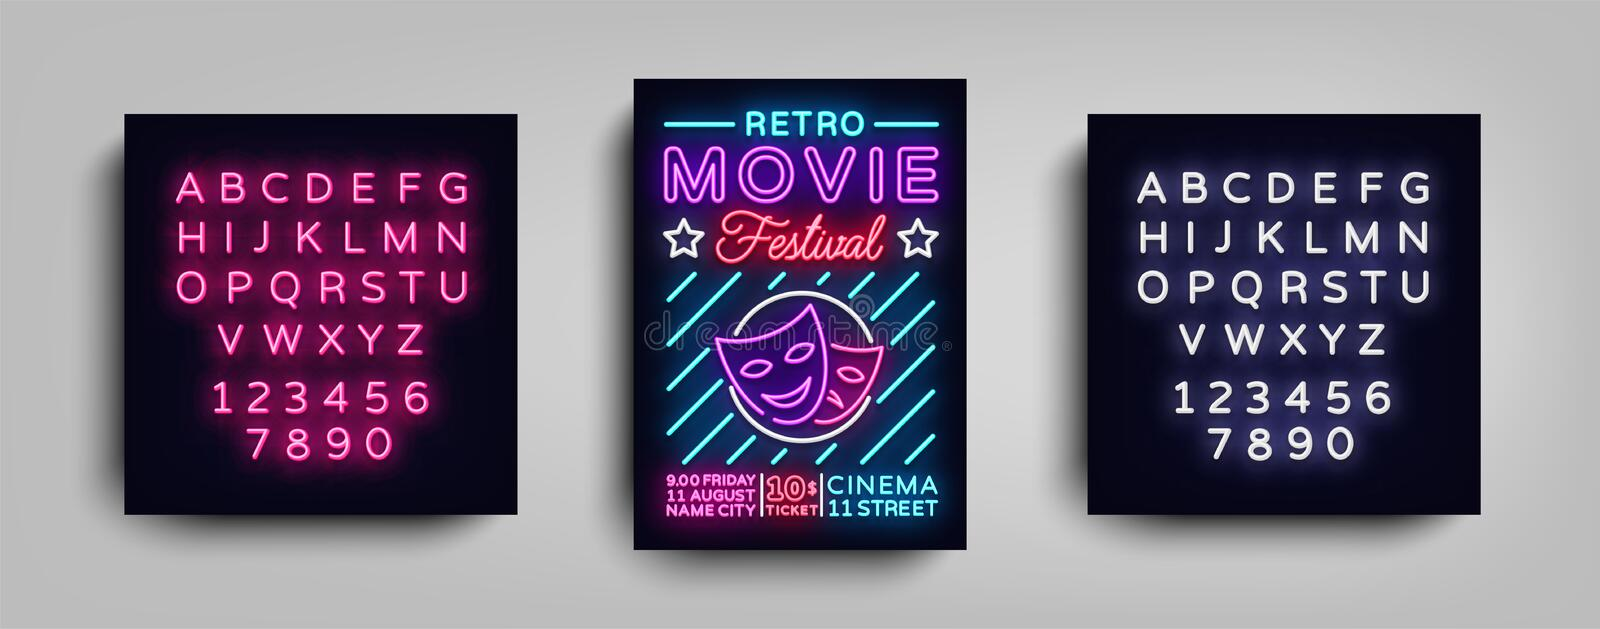 Retro Movie Festival postcard typography design neon template. Brochure style neon, neon sign, poster, banner, night stock illustration